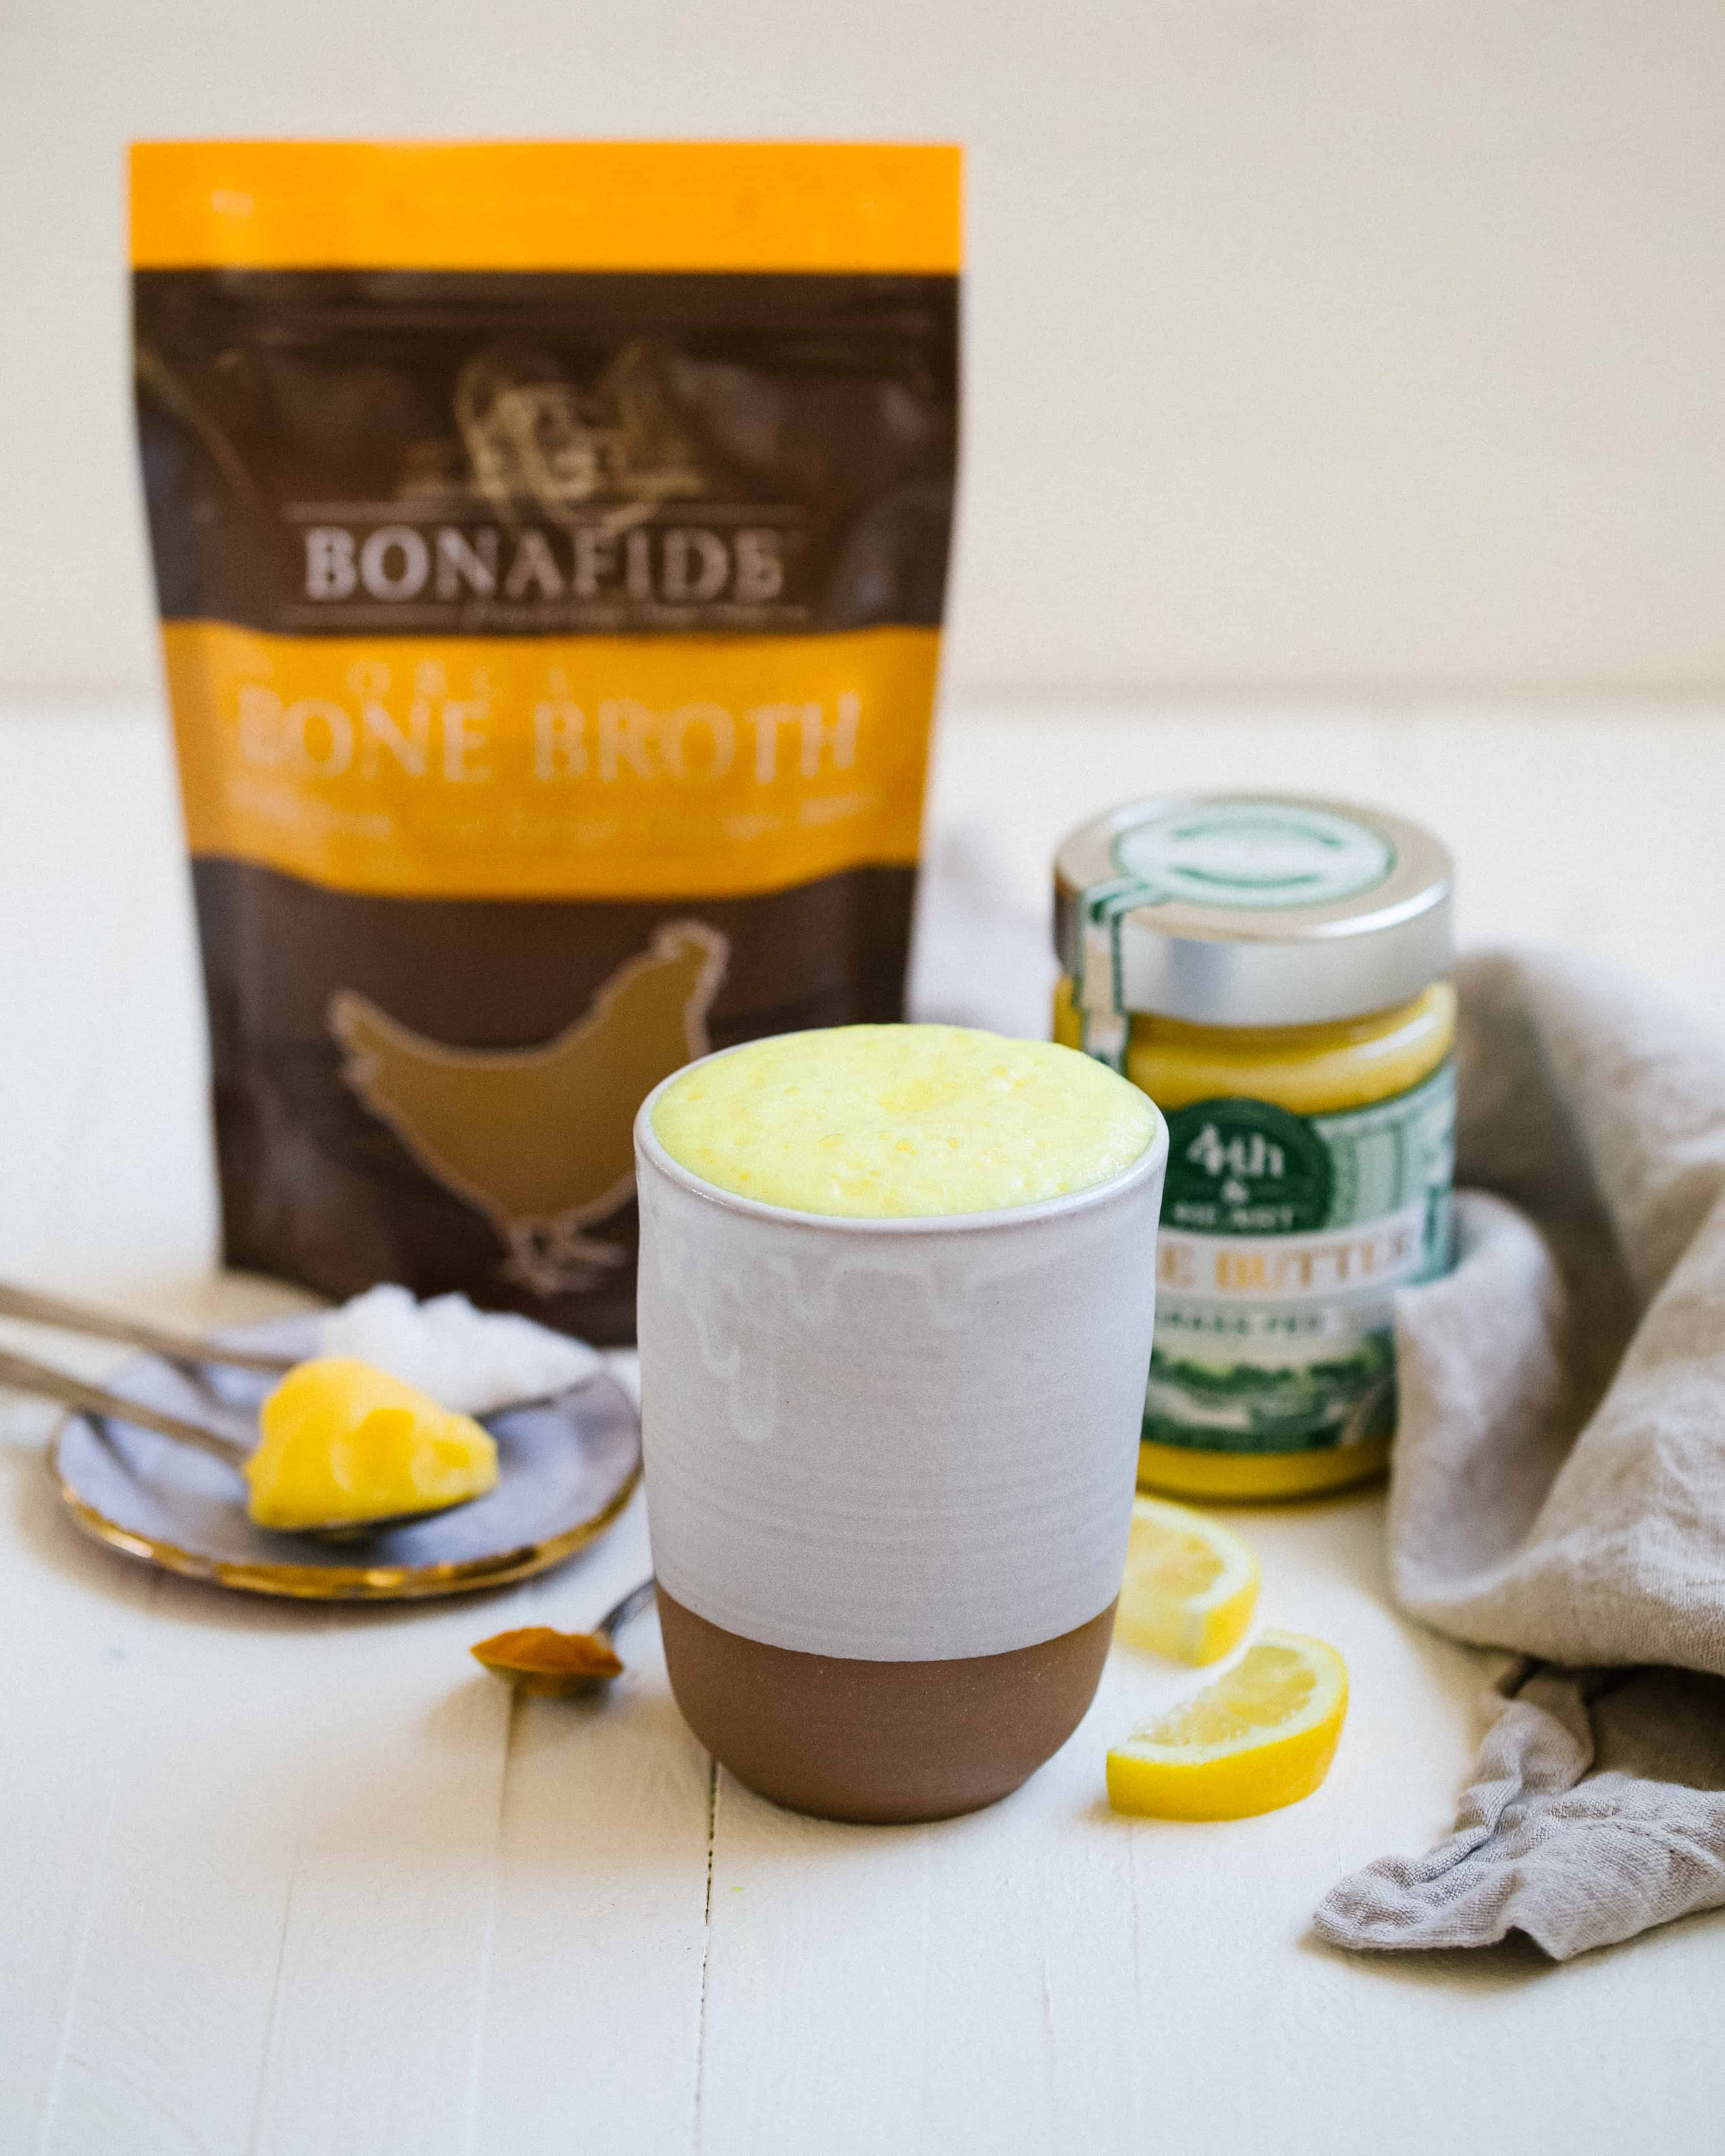 A Healing Keto Bone Broth Latte with Turmeric